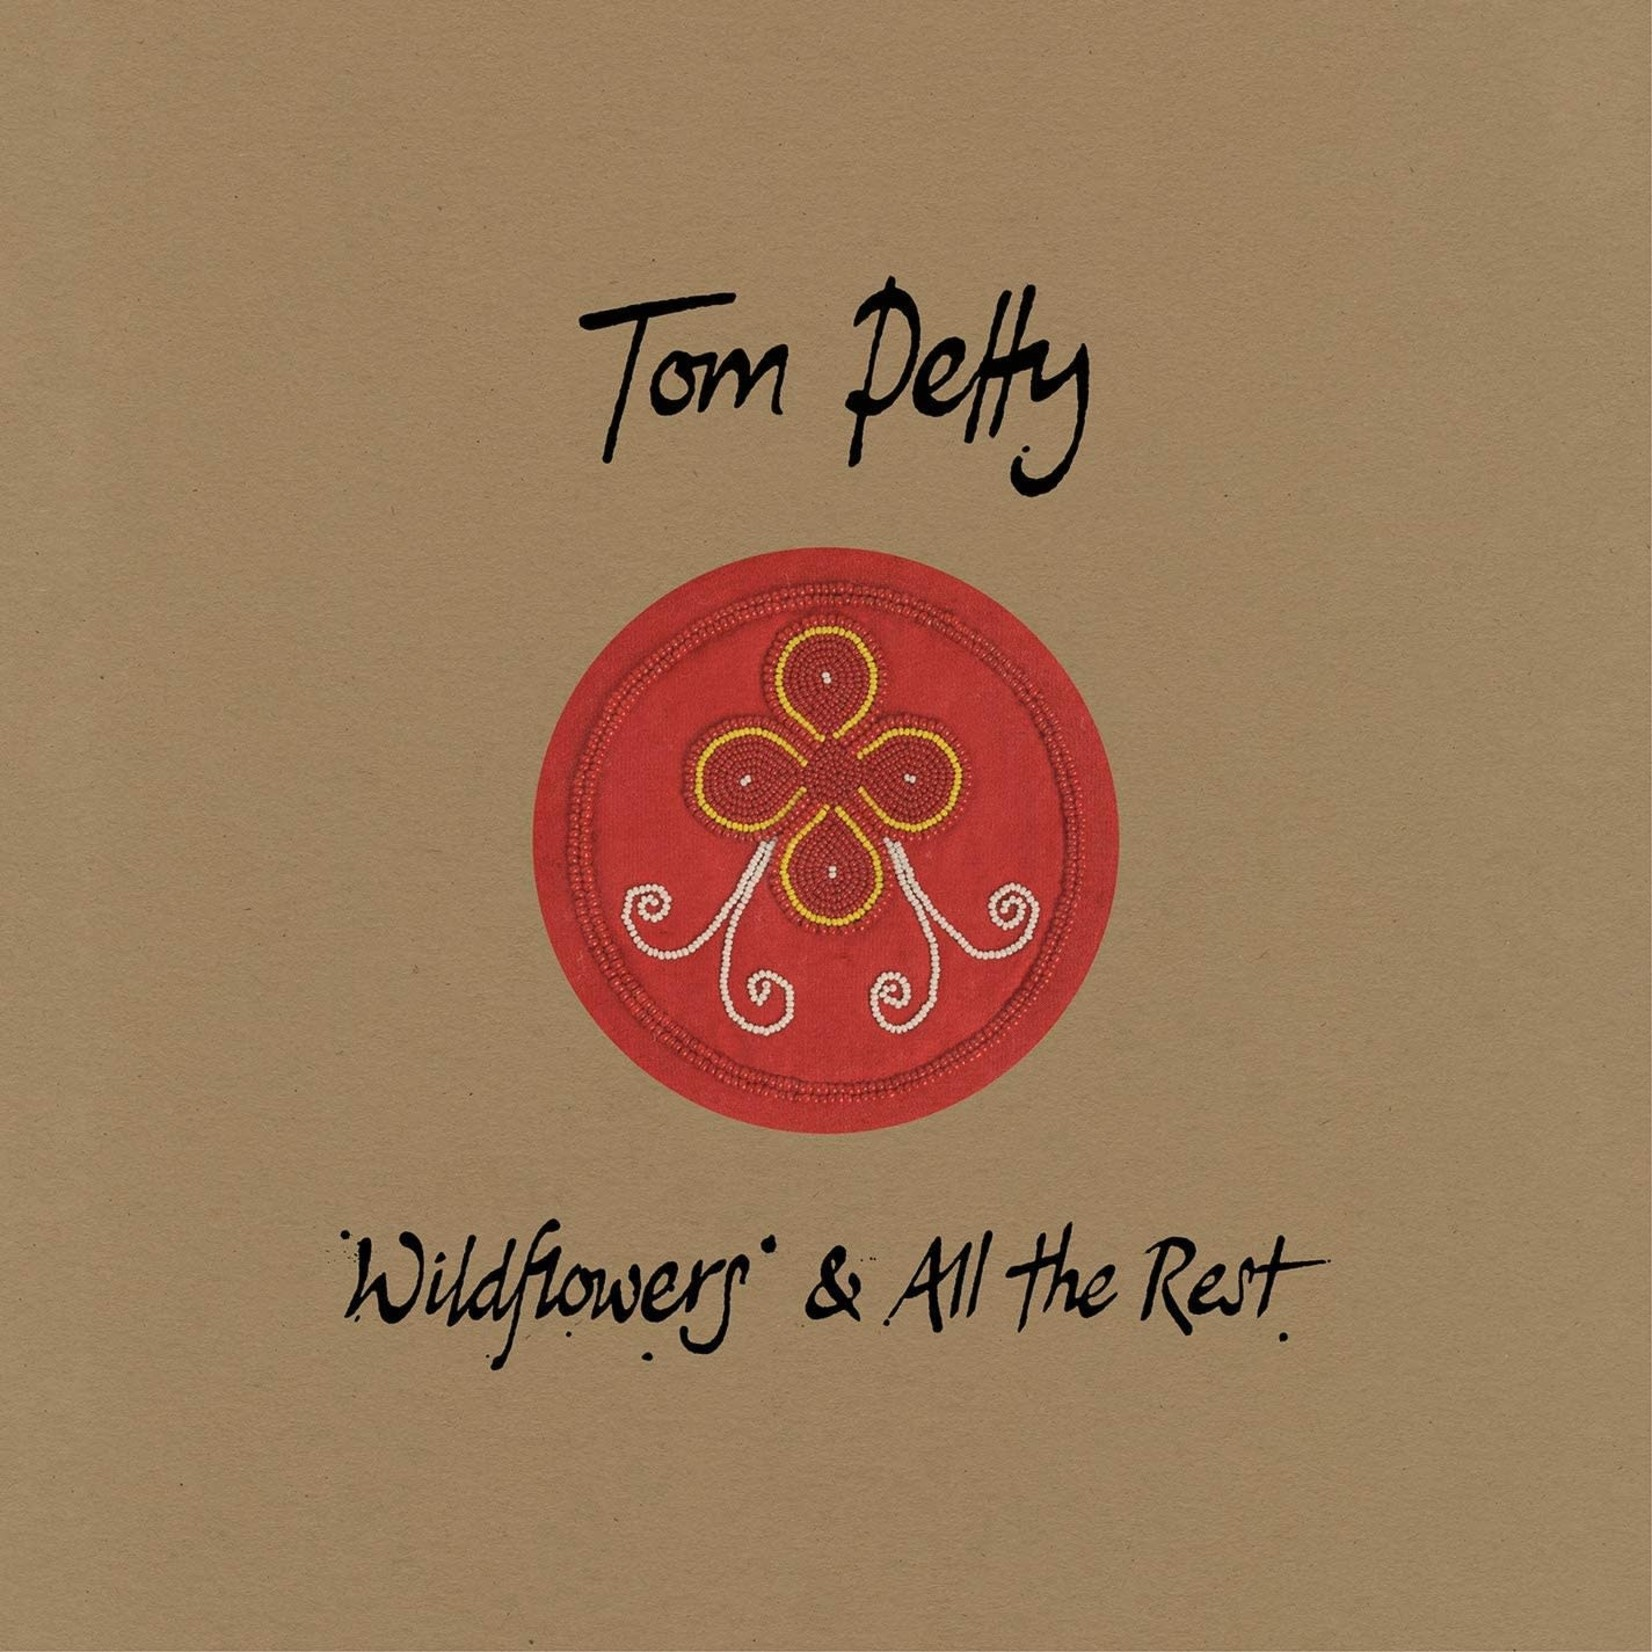 [New] Petty, Tom: Wildflowers And All The Rest (7LP, Deluxe Ed., box-set)